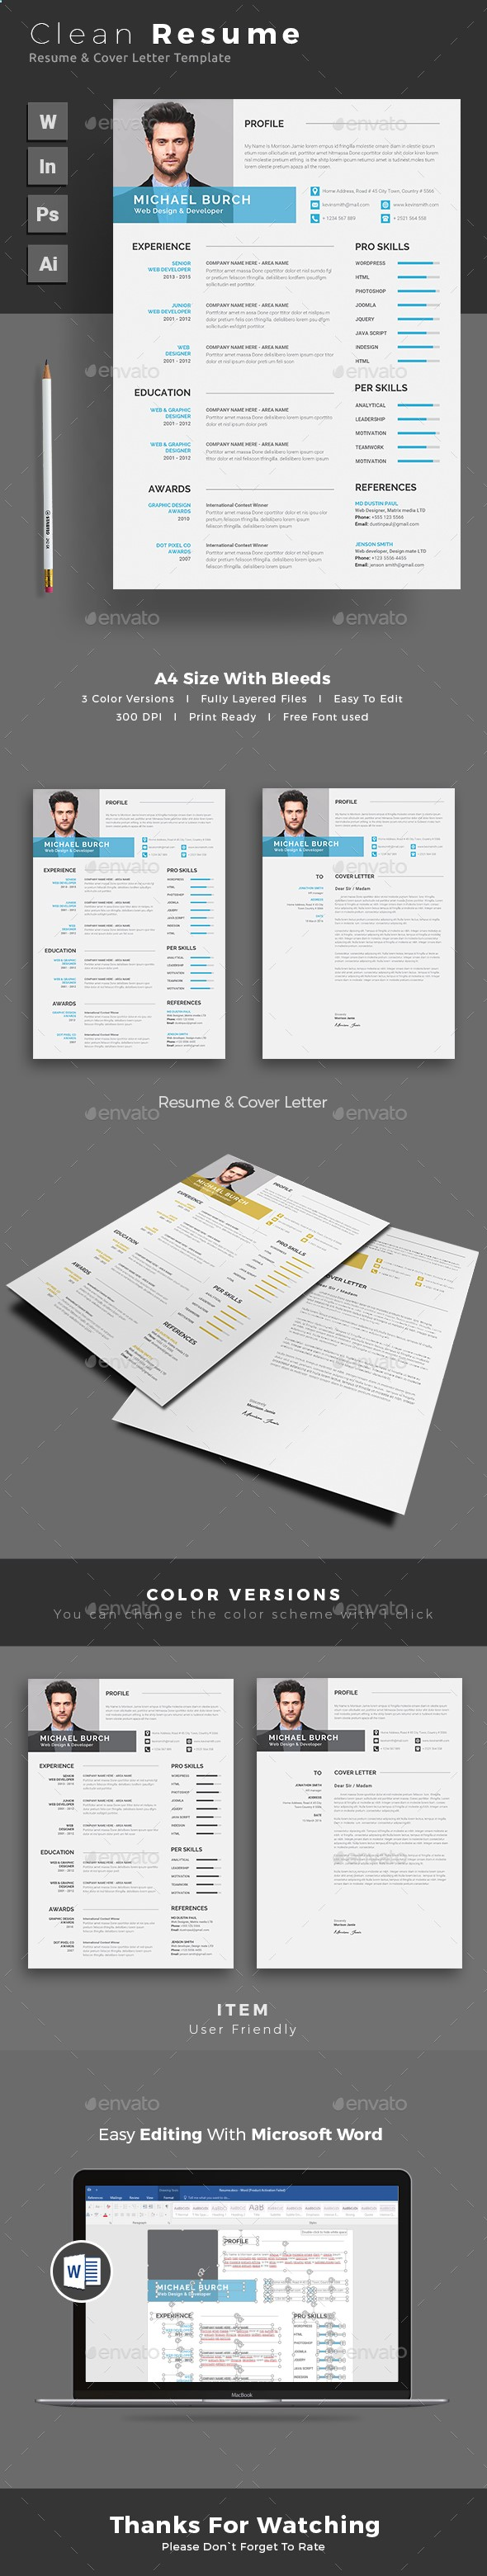 resume template psd  indesign indd  ai illustrator  ms